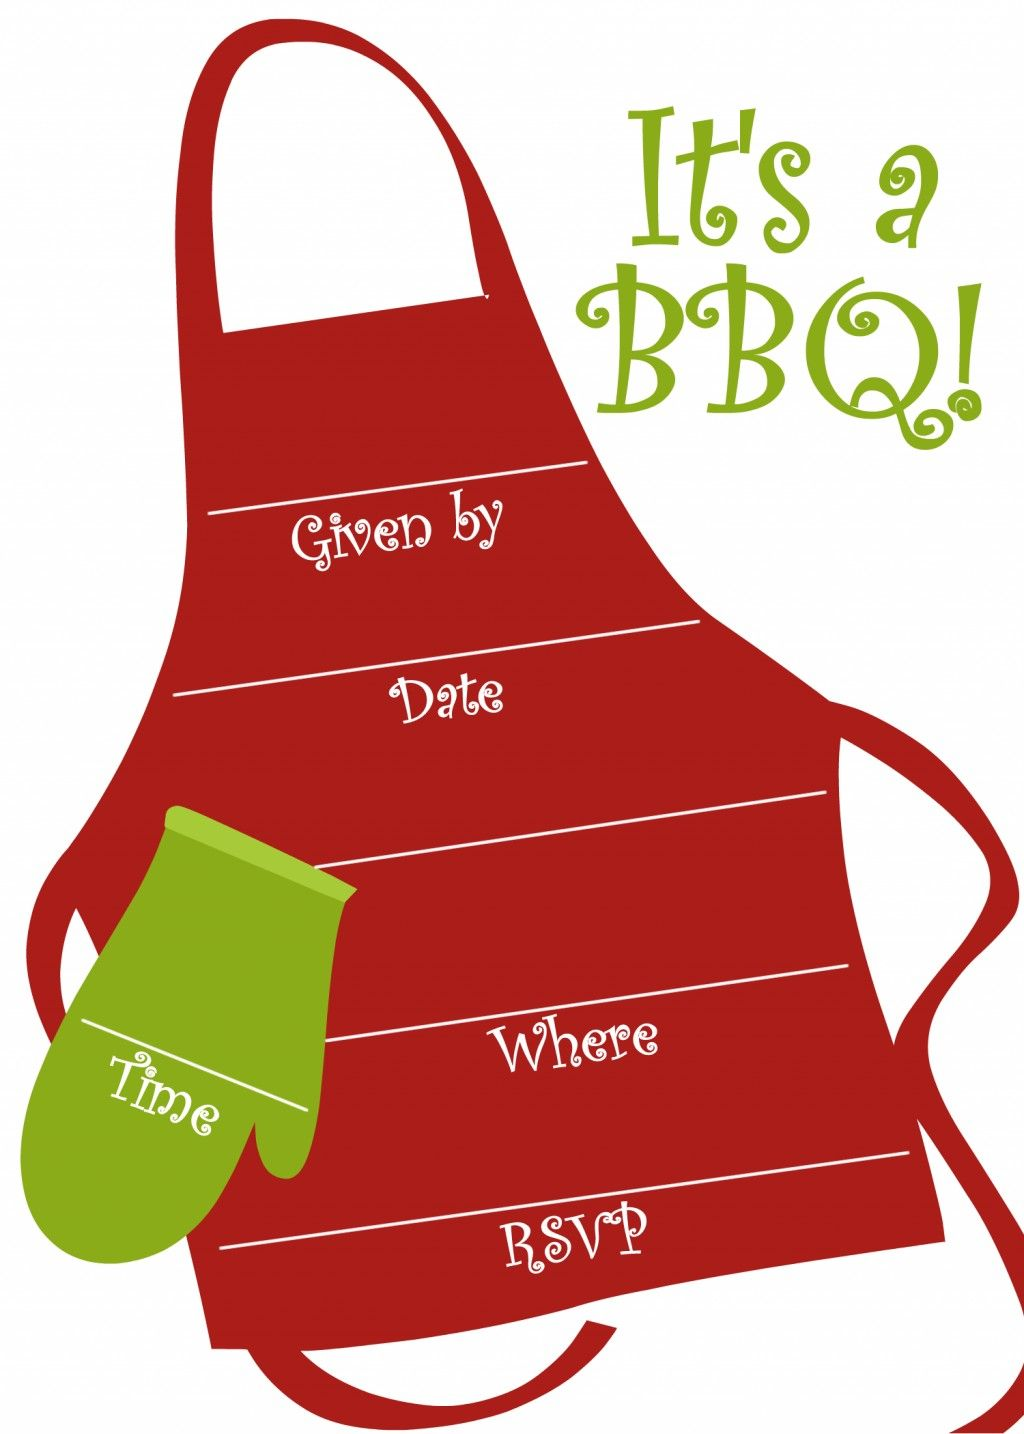 Free BBQ Party Invitations Templates | Pinterest | Party invitation ...